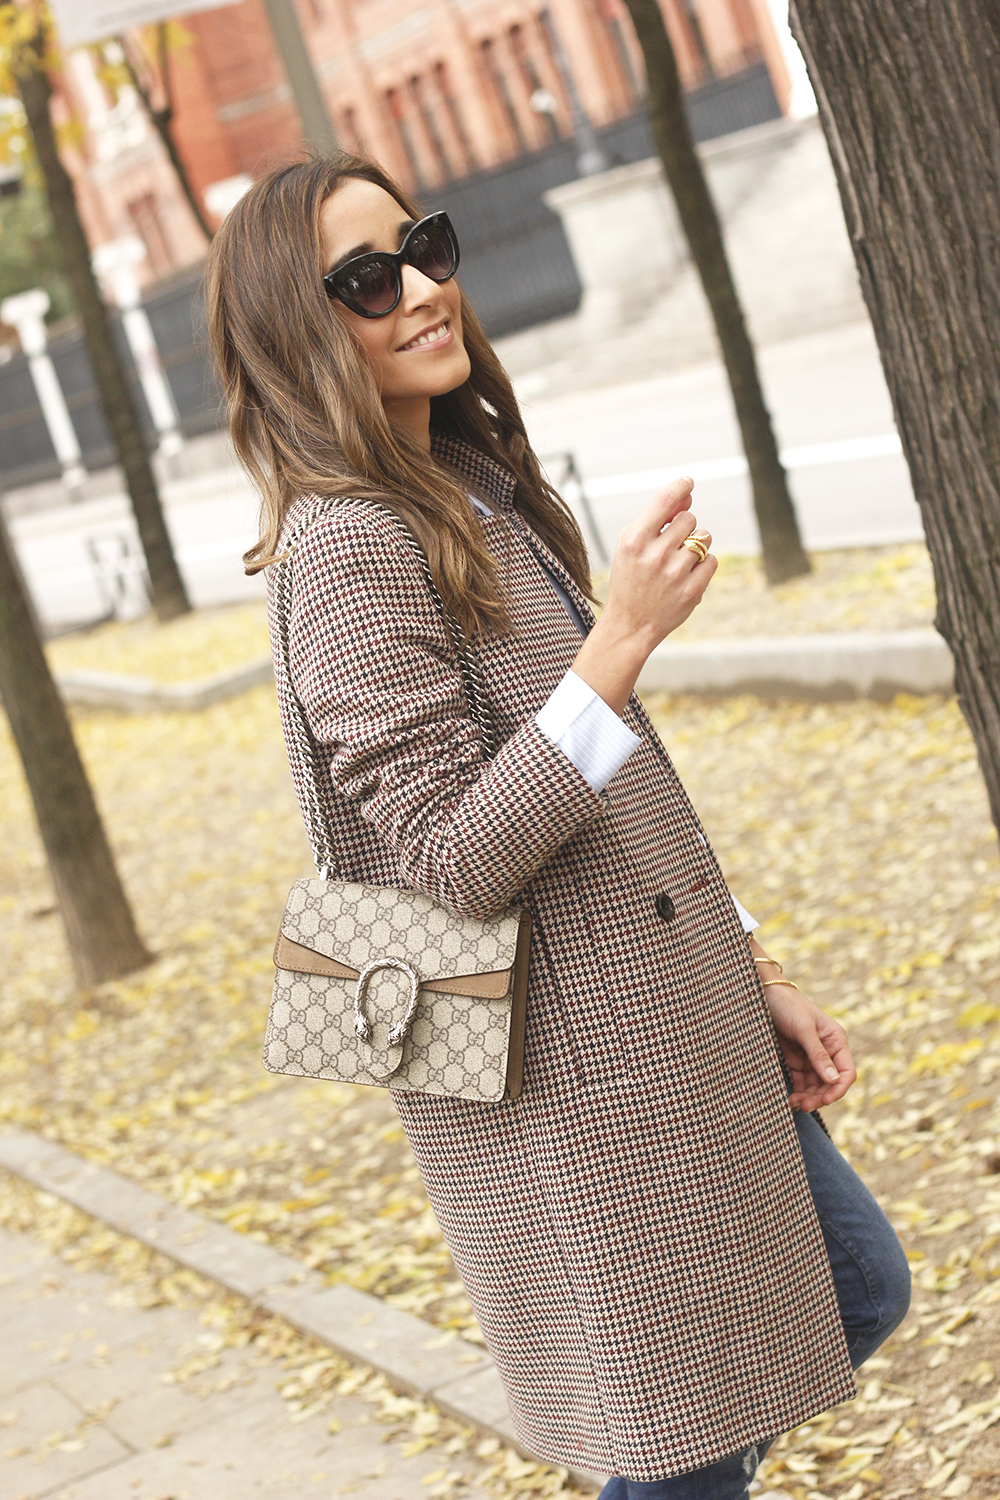 Houndstooth Coat striped shirt burgundy uterqüe heels gucci bag outfit style fashion09